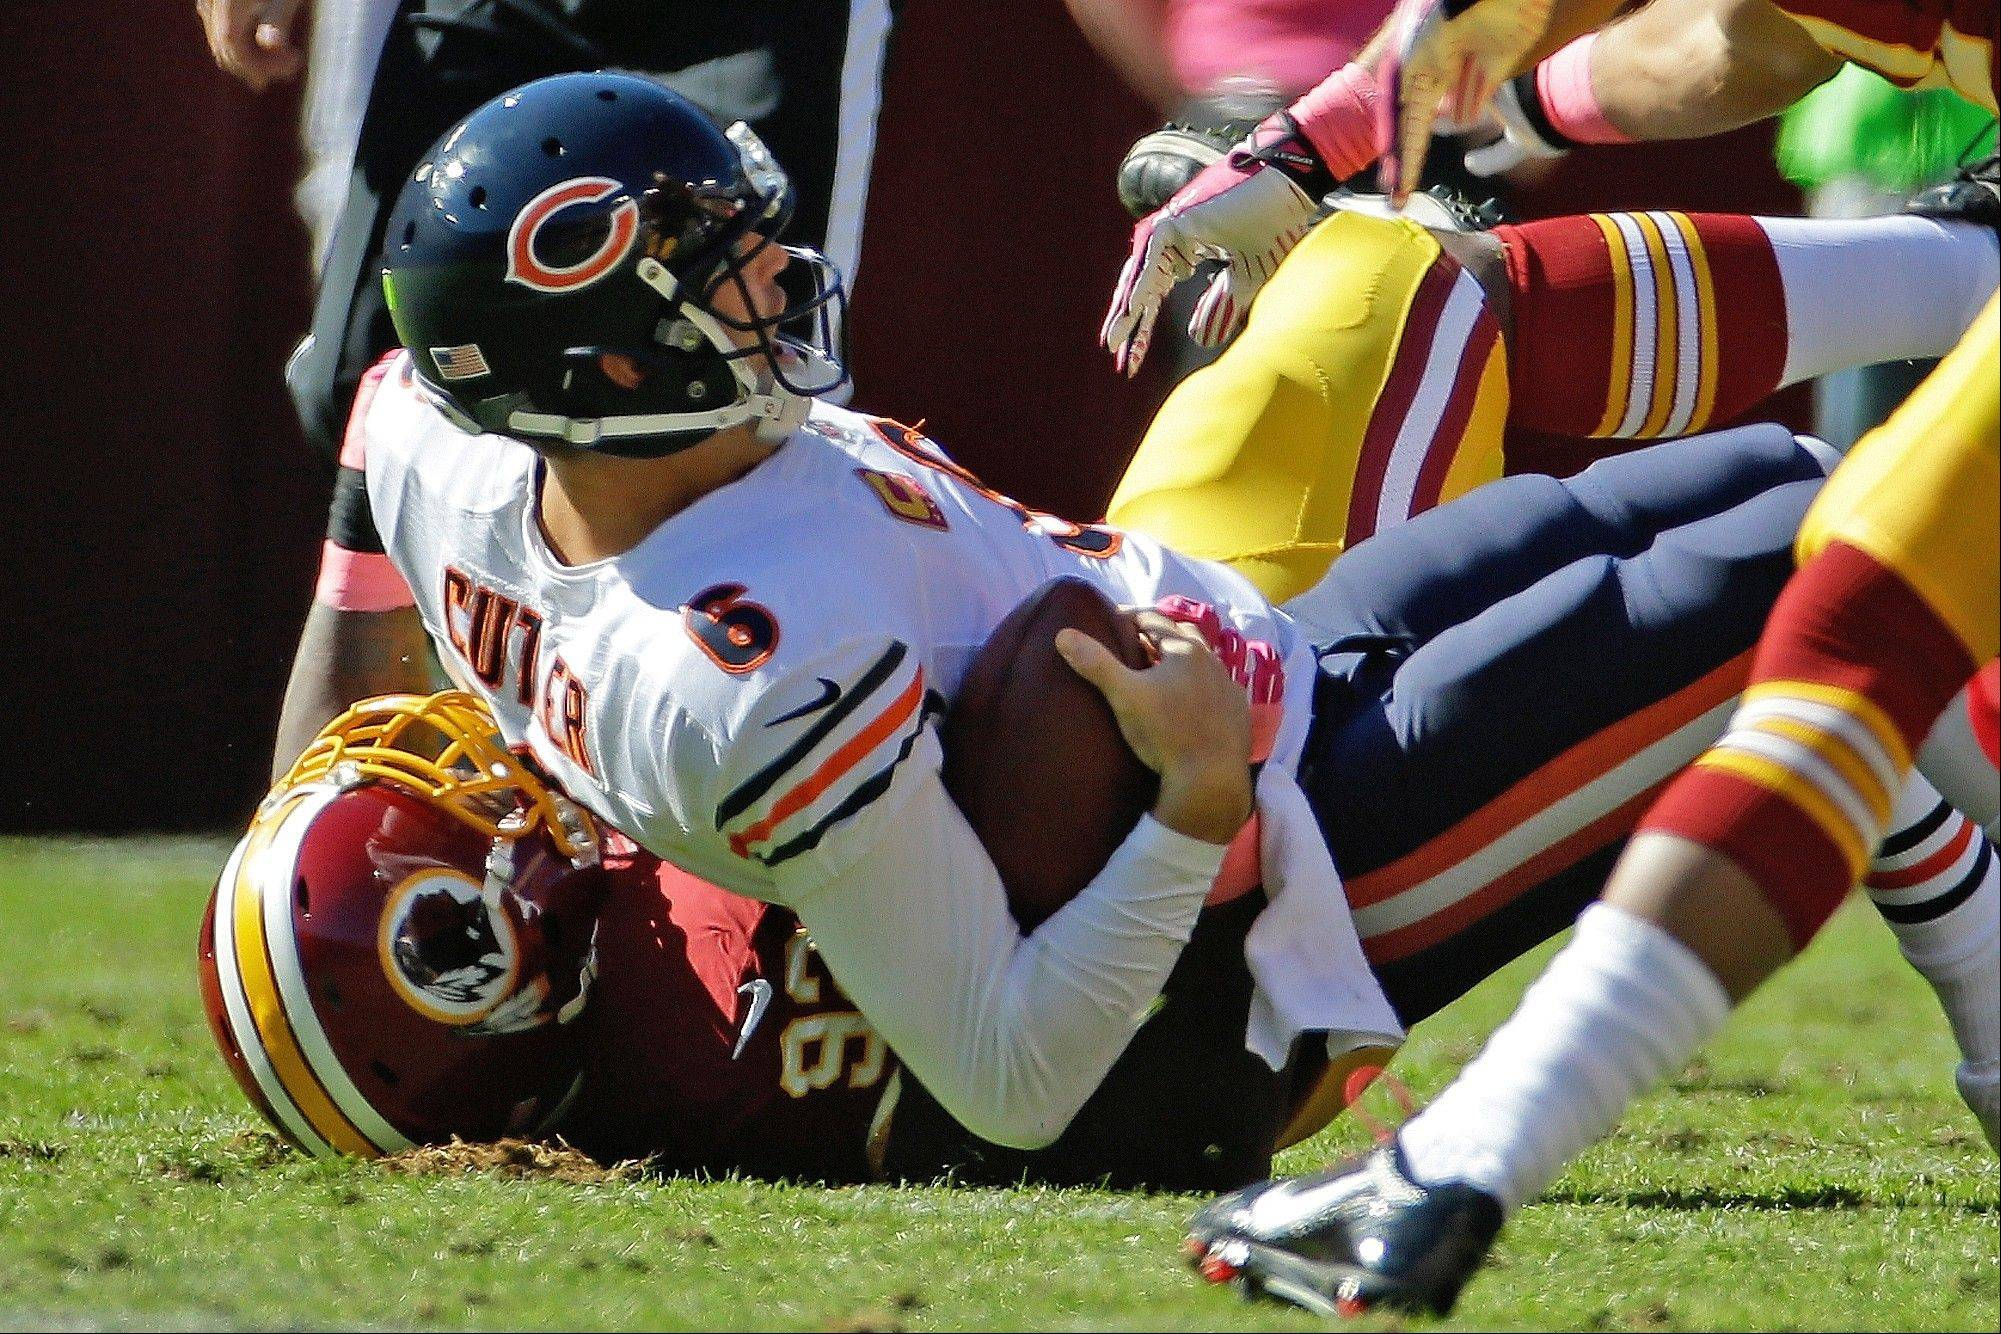 Bears quarterback Jay Cutler is sacked by Washington defensive end Chris Baker during Sunday's loss. Cutler suffered a groin injury on the play.